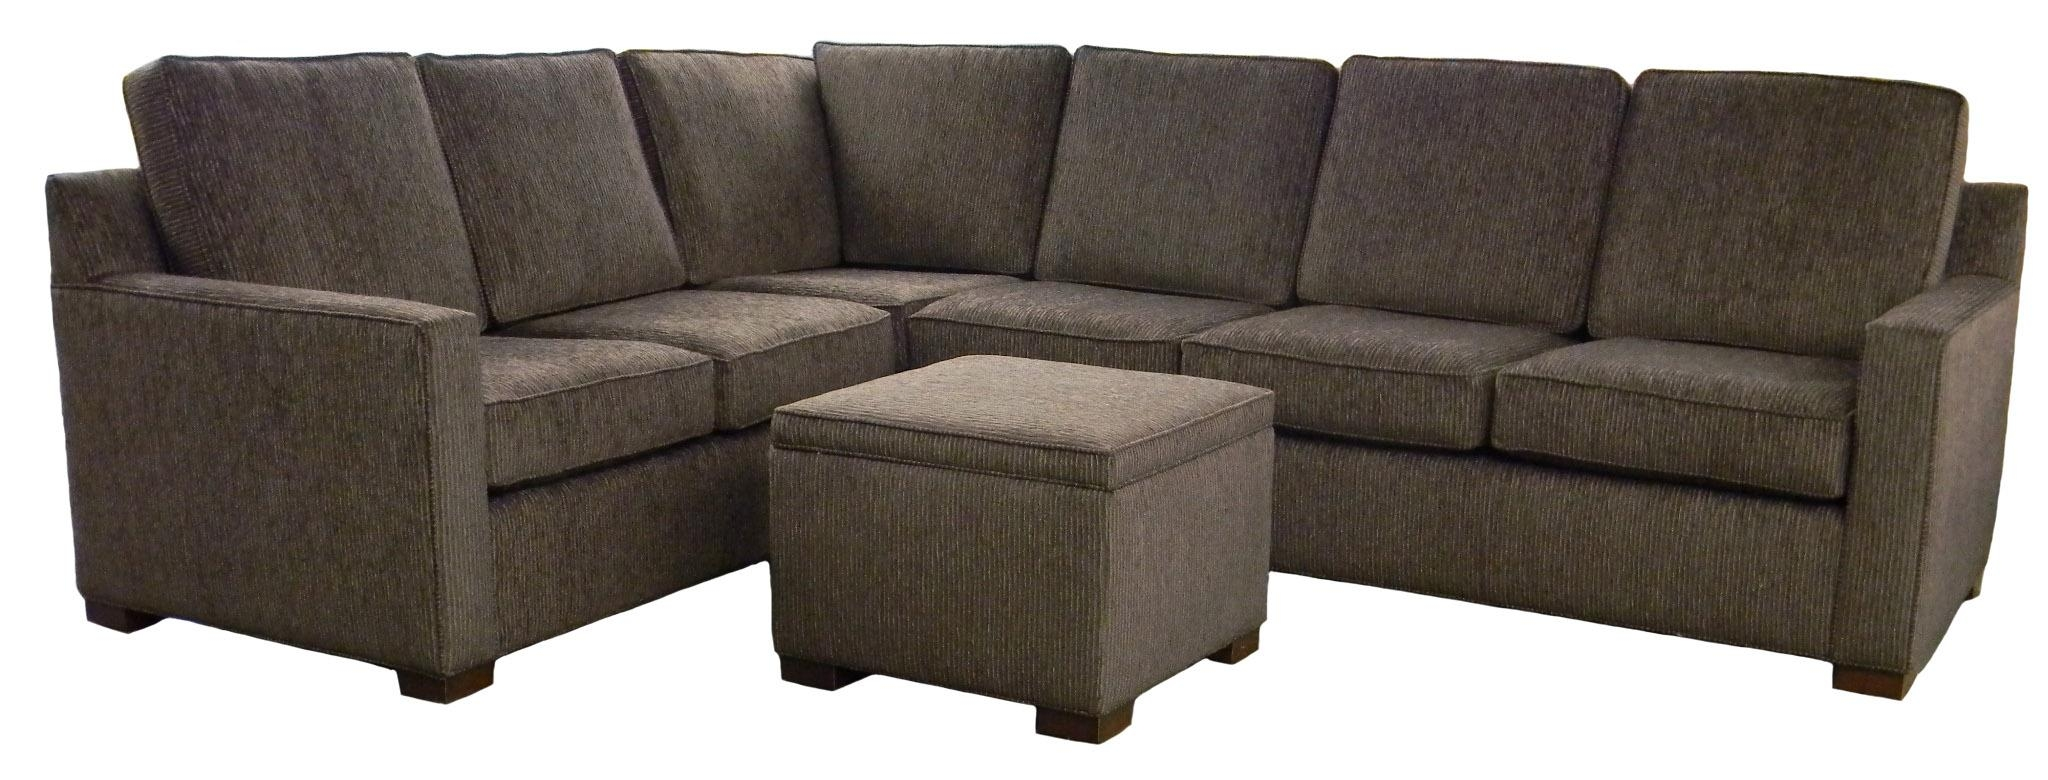 Short Sectional Sofa With Design Ideas 31261 | Kengire For Short Sectional Sofas (Image 19 of 20)